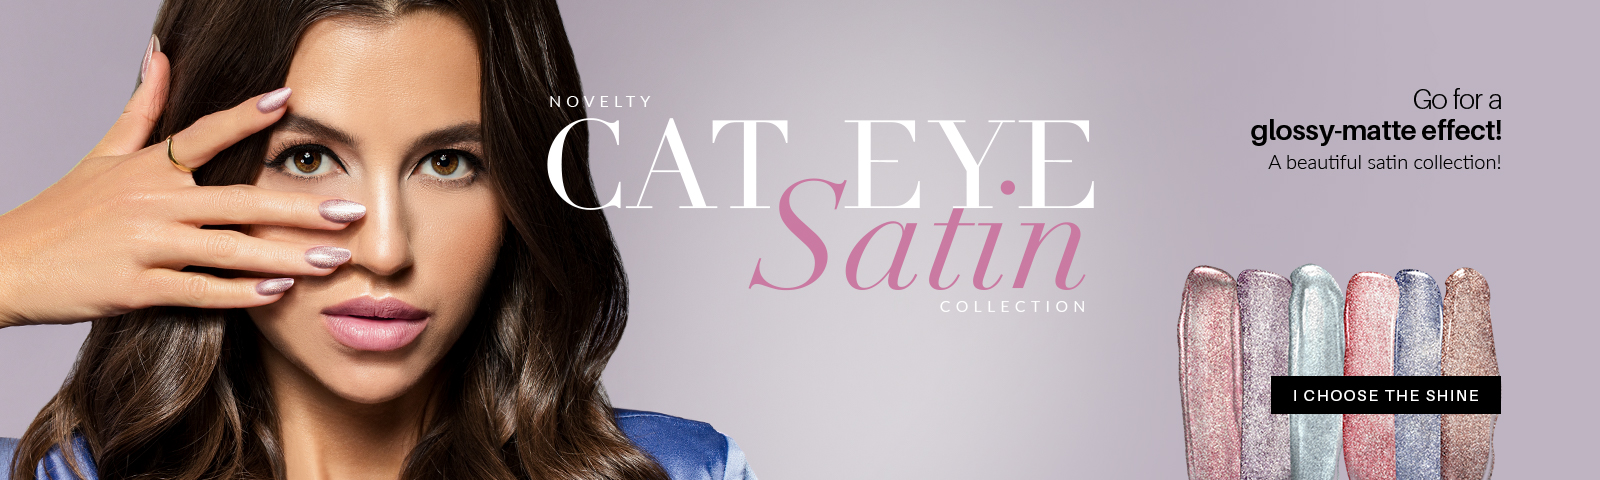 Cat Eye Satin Collection The new Cat Eye Satin collectiondiscover 6 unique colors  Choose the shine!